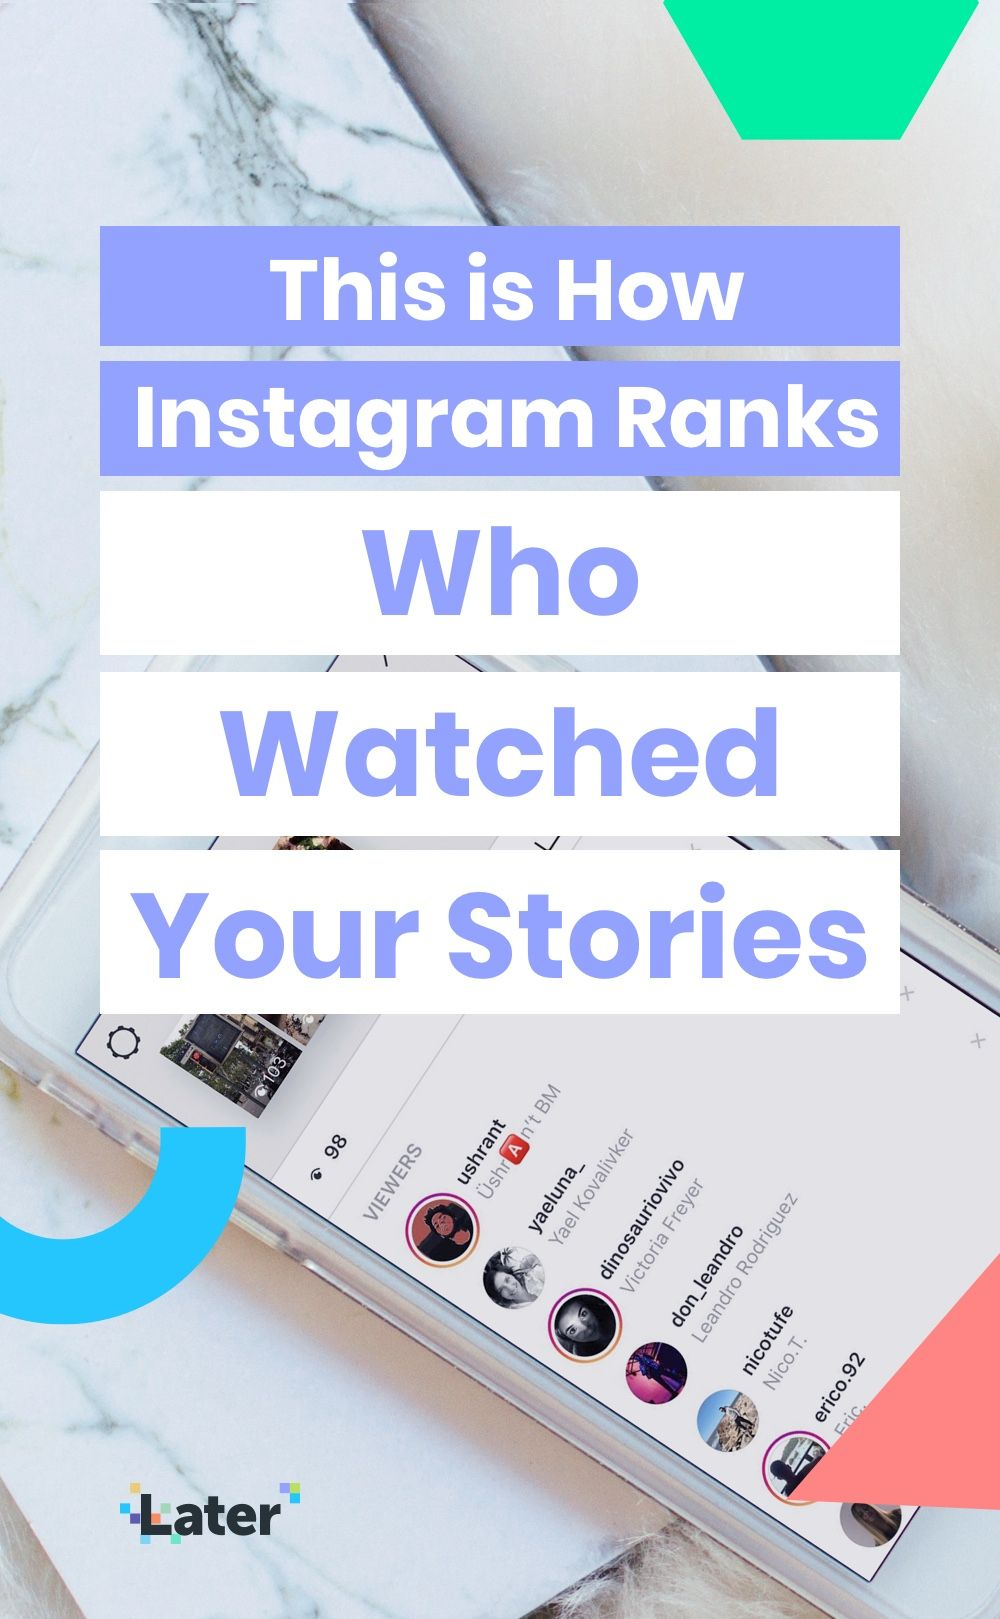 This is How Instagram Ranks Who Watched Your Stories